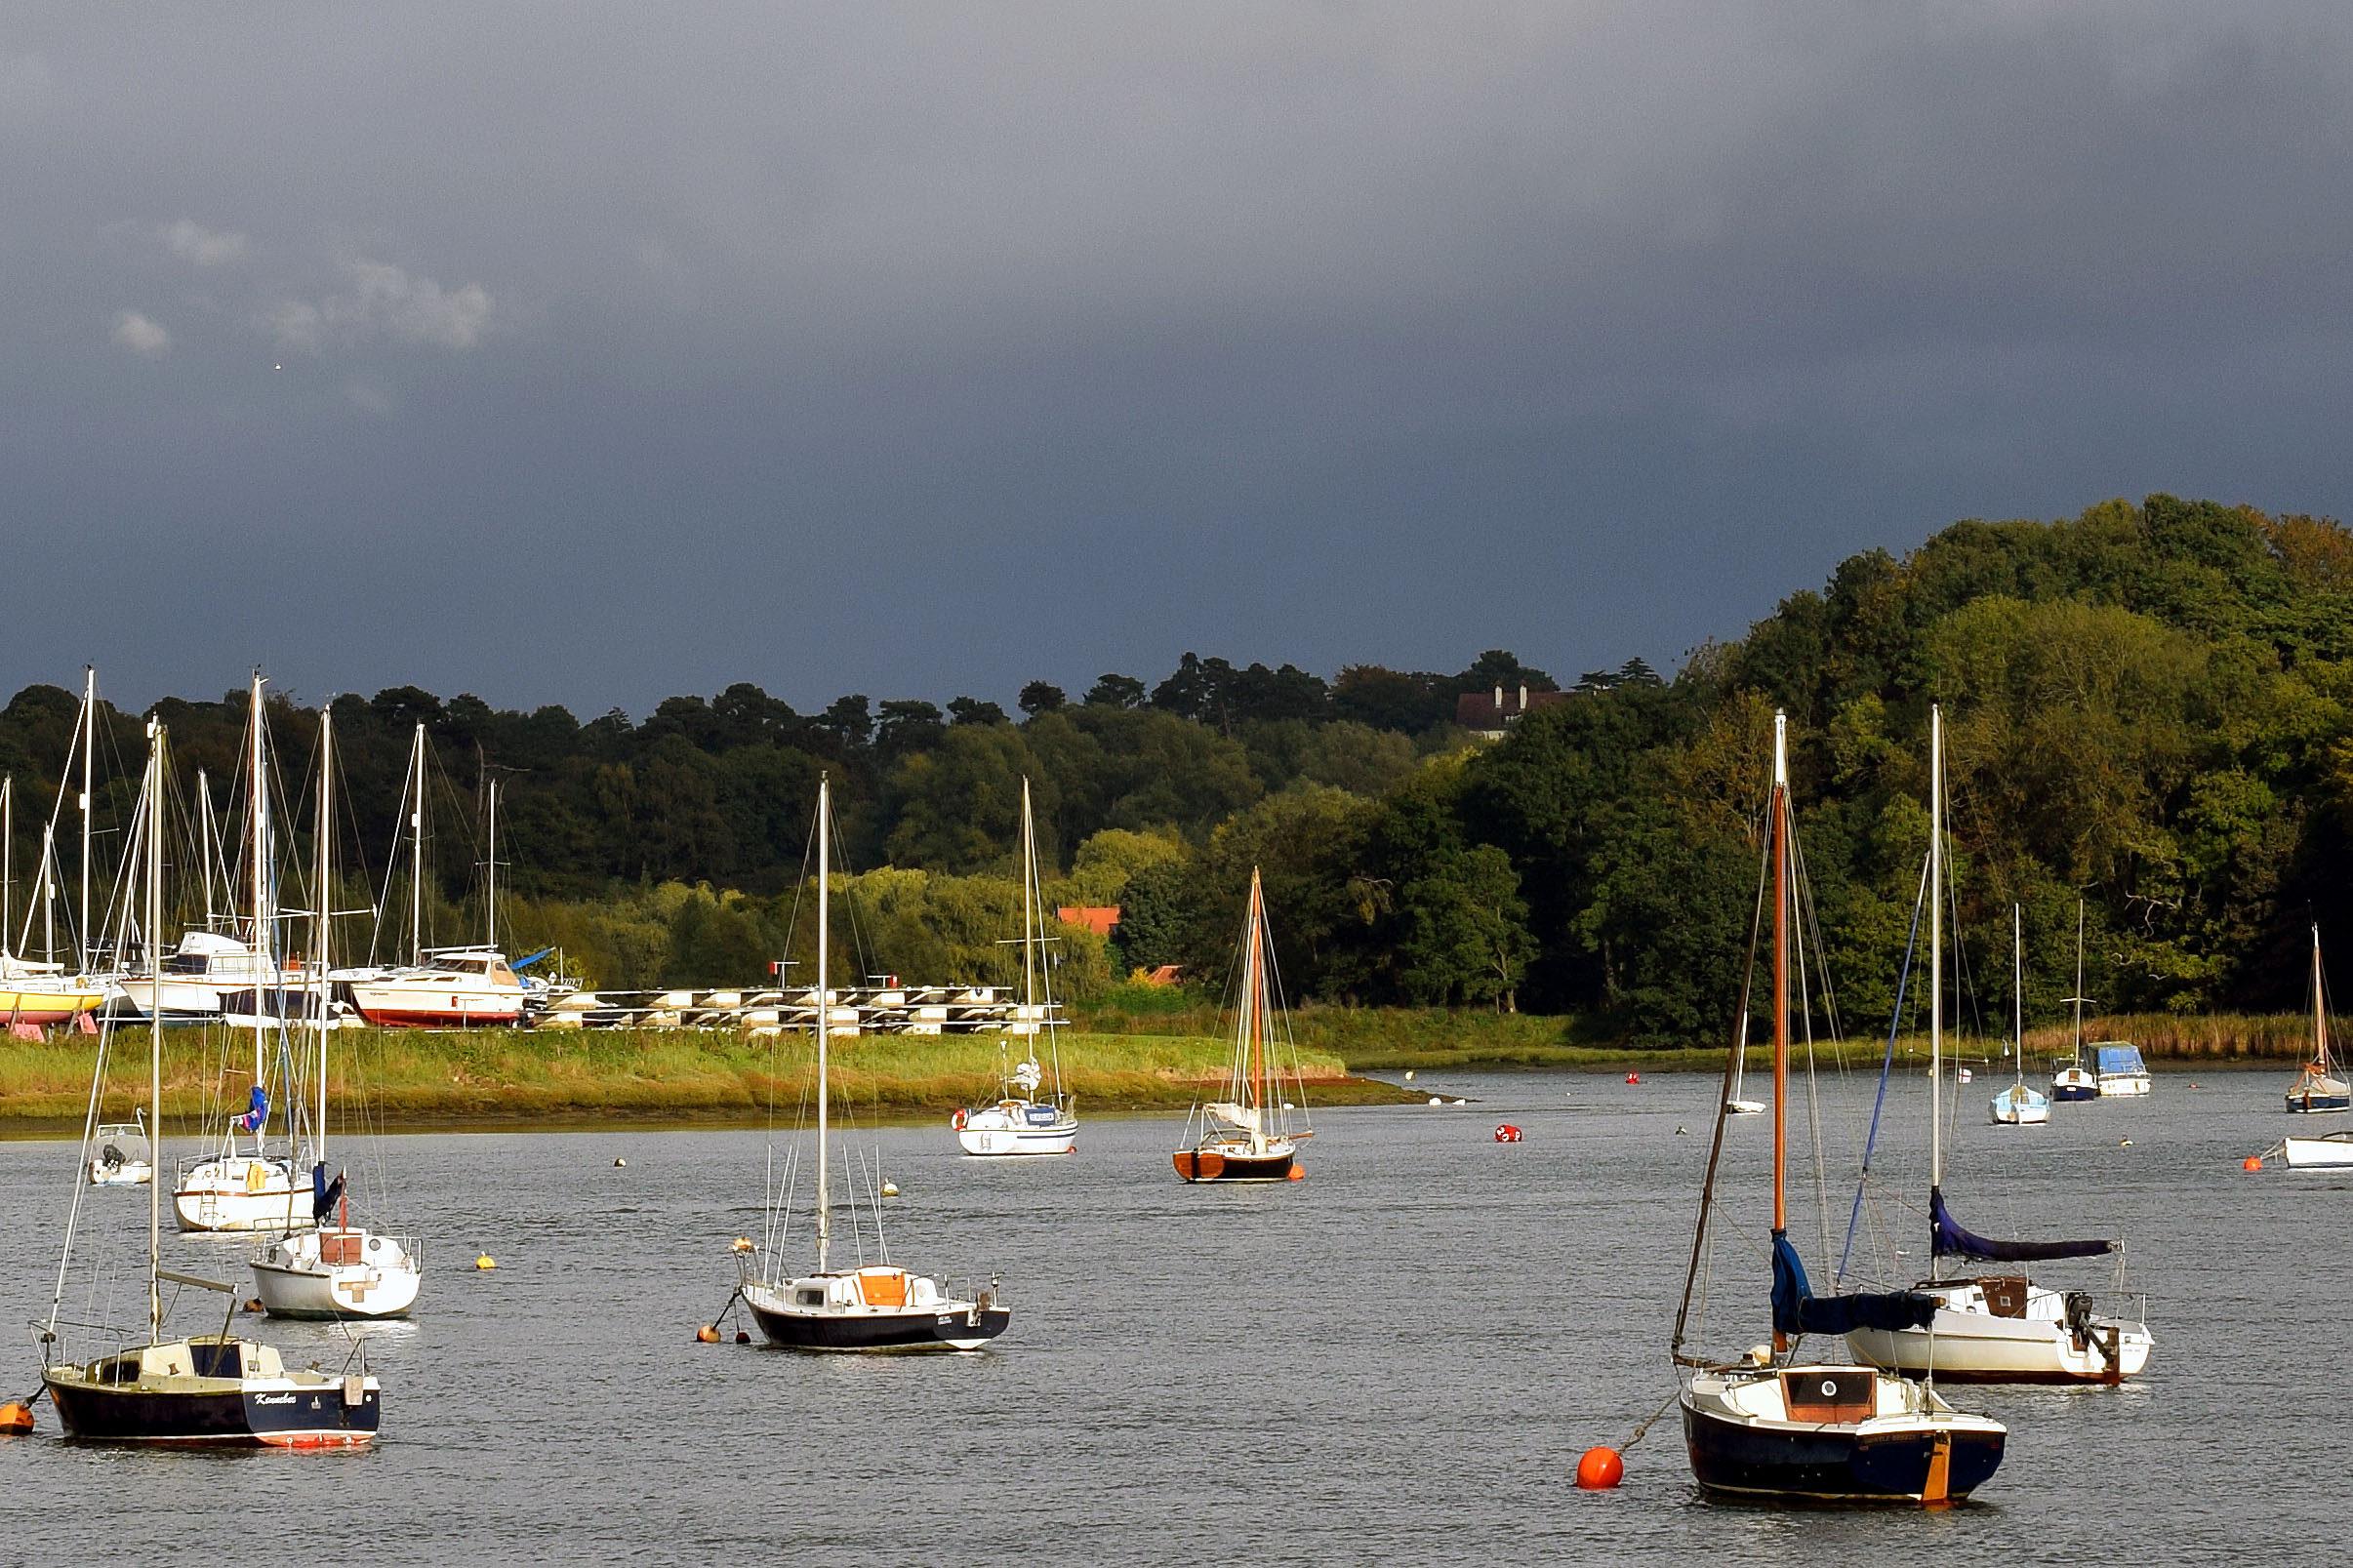 Yachts and boats on the River Deben, Boating, Boats, Leisure, Yachting, HQ Photo